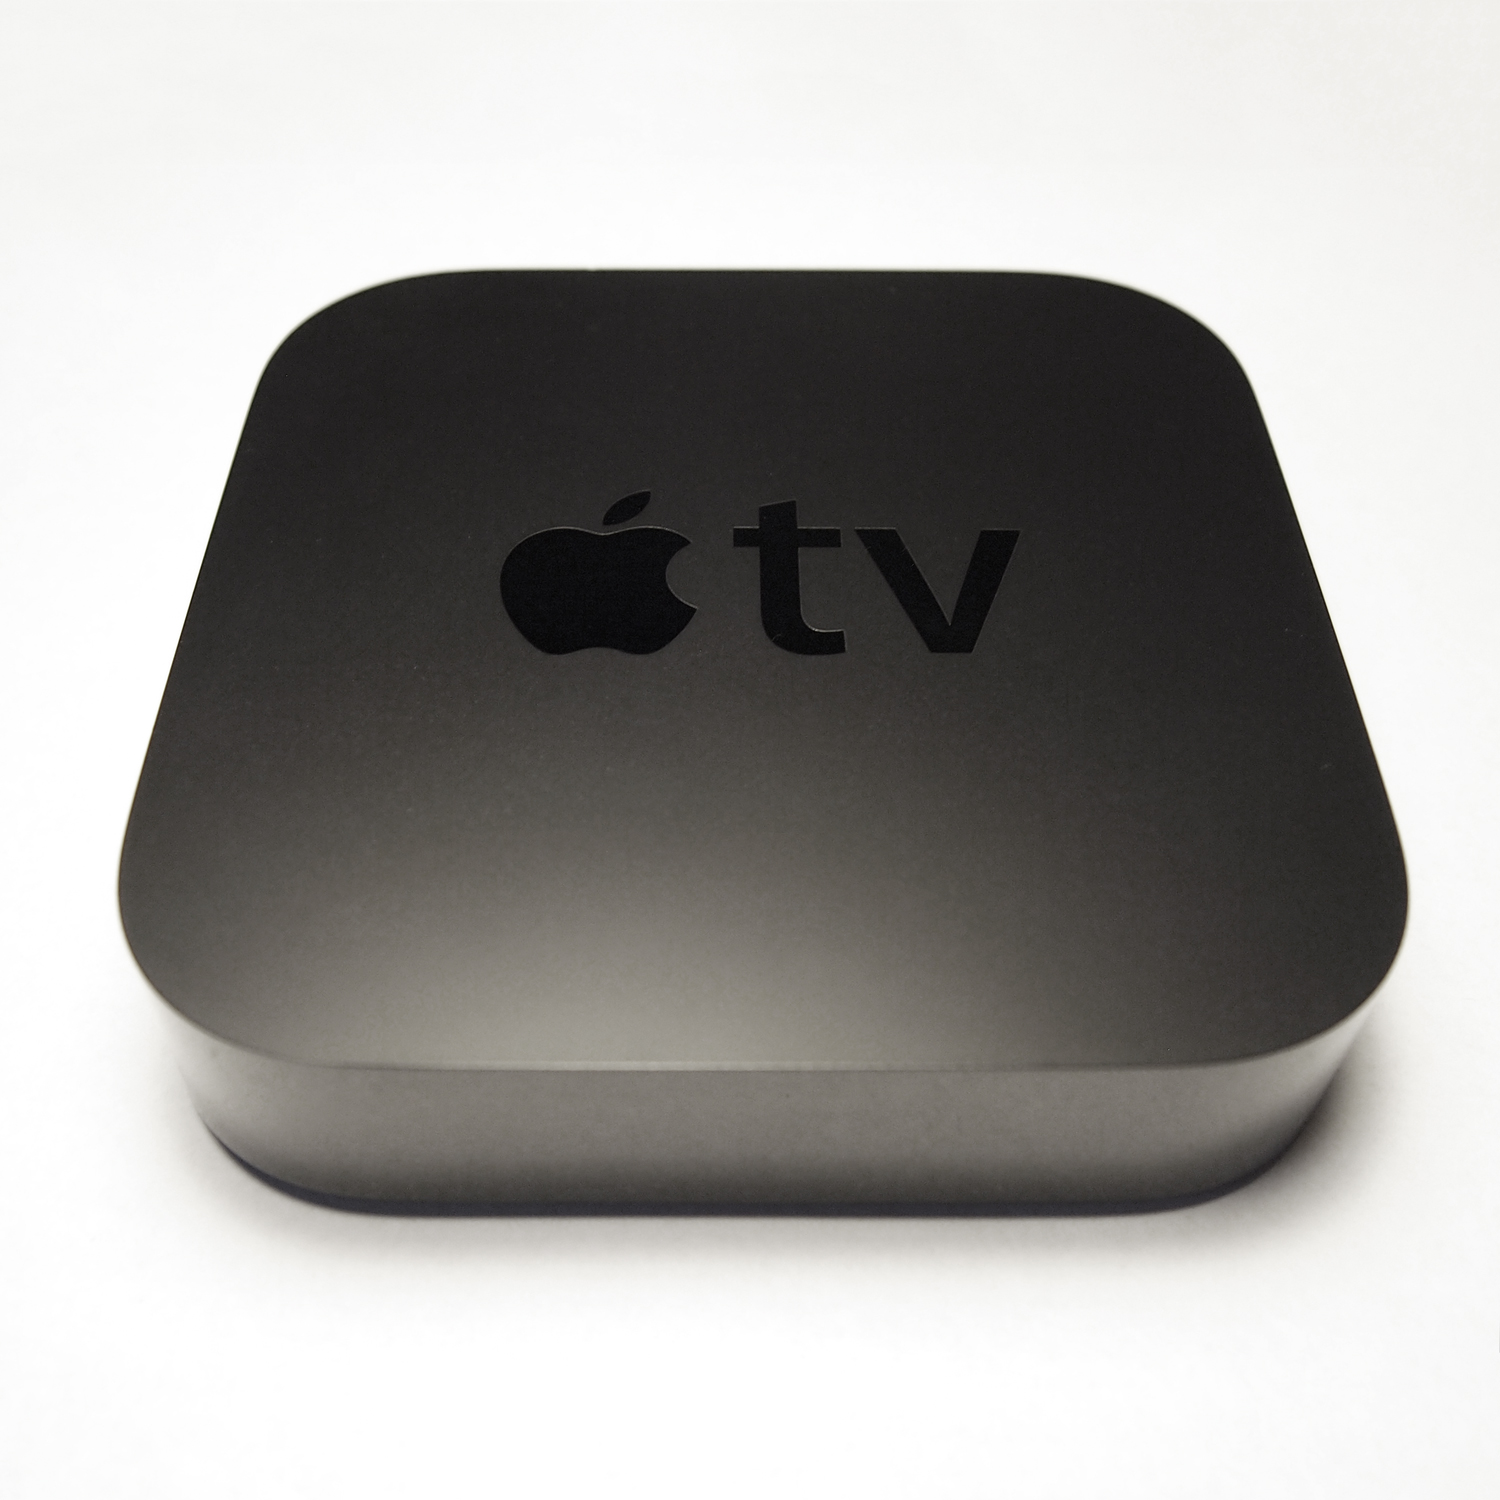 Apple TV.